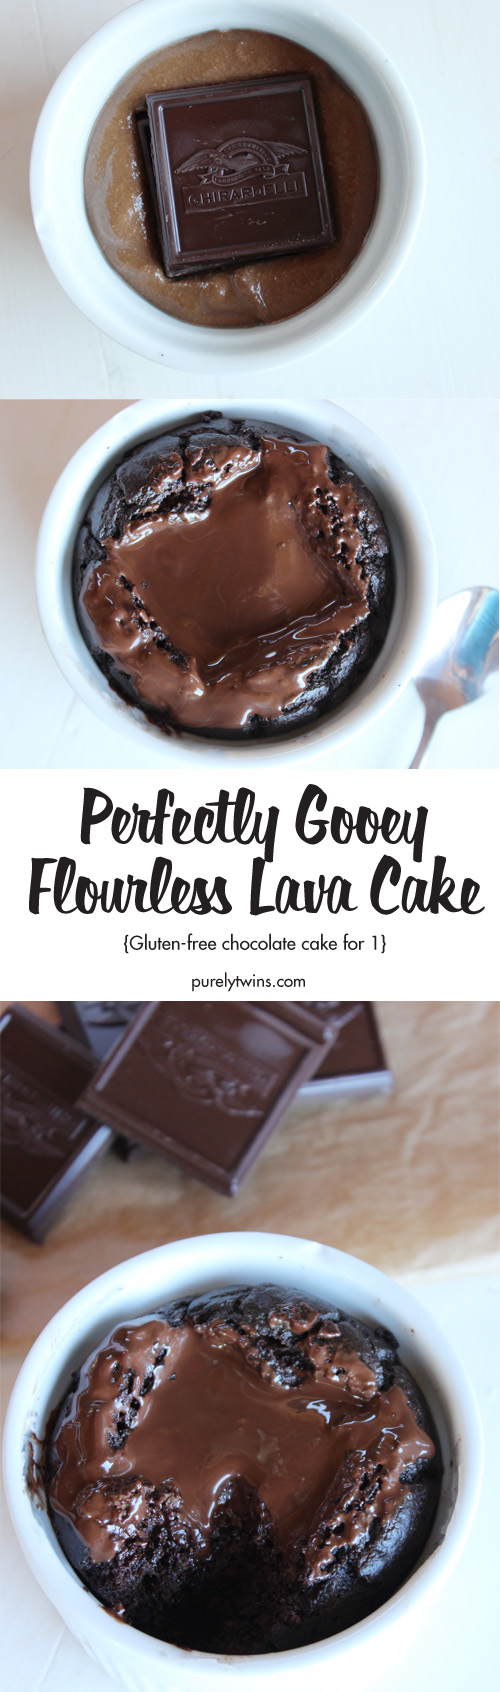 The Best and Easiest Flourless Chocolate Lava Cake - The warm, gooey, Ghirardelli chocolate center is heavenly! A super simple homemade cake batter bakes up into a beautiful chocolate cake with warm fudge hidden inside! A dream-come-true dessert! Only 6 ingredients. No gluten, grains, nuts or added sugar.